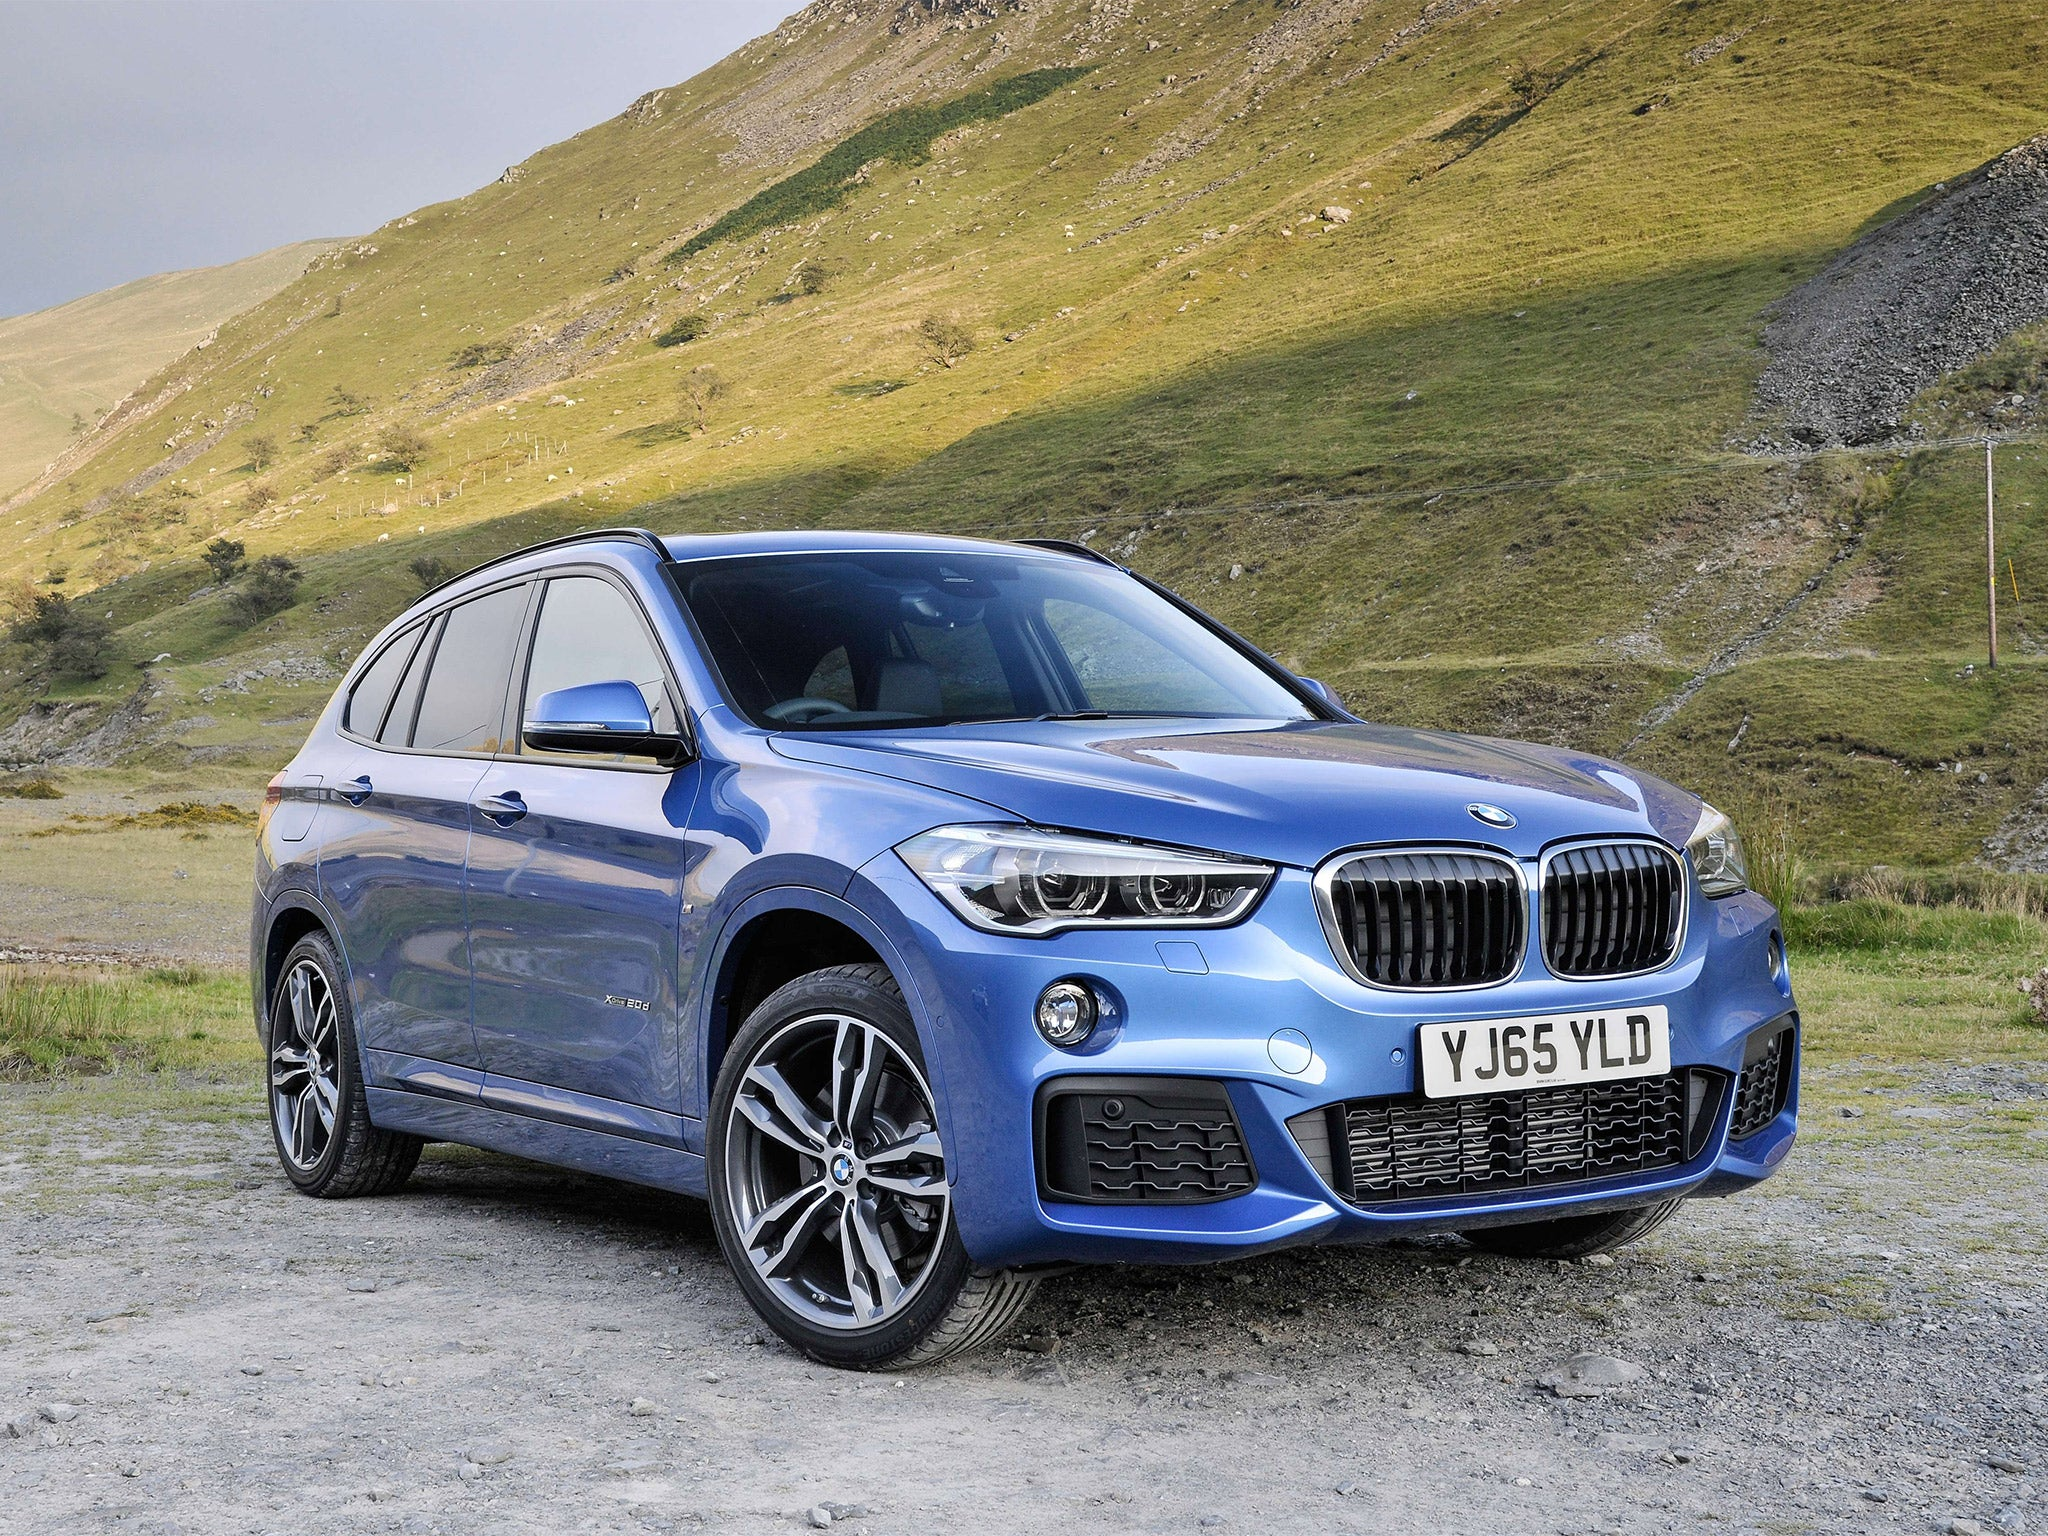 bmw x1 xdrive 25d motoring review from mongrel to beast though you wouldn 39 t want to buy one. Black Bedroom Furniture Sets. Home Design Ideas